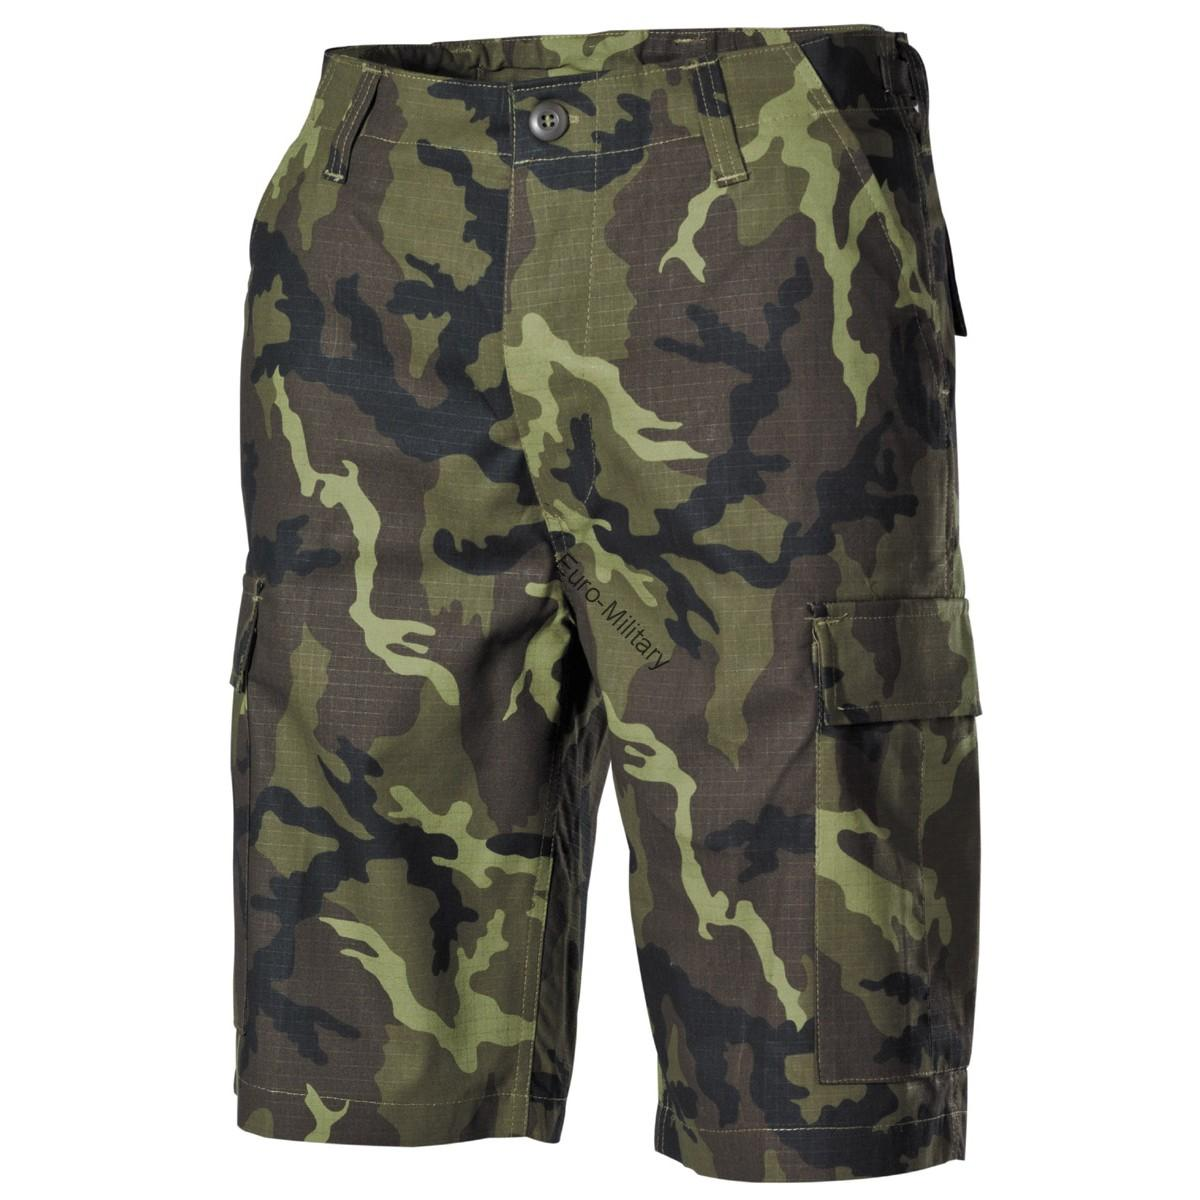 CZ Army M95 Camo Pattern Military Shorts - Rip-Stop